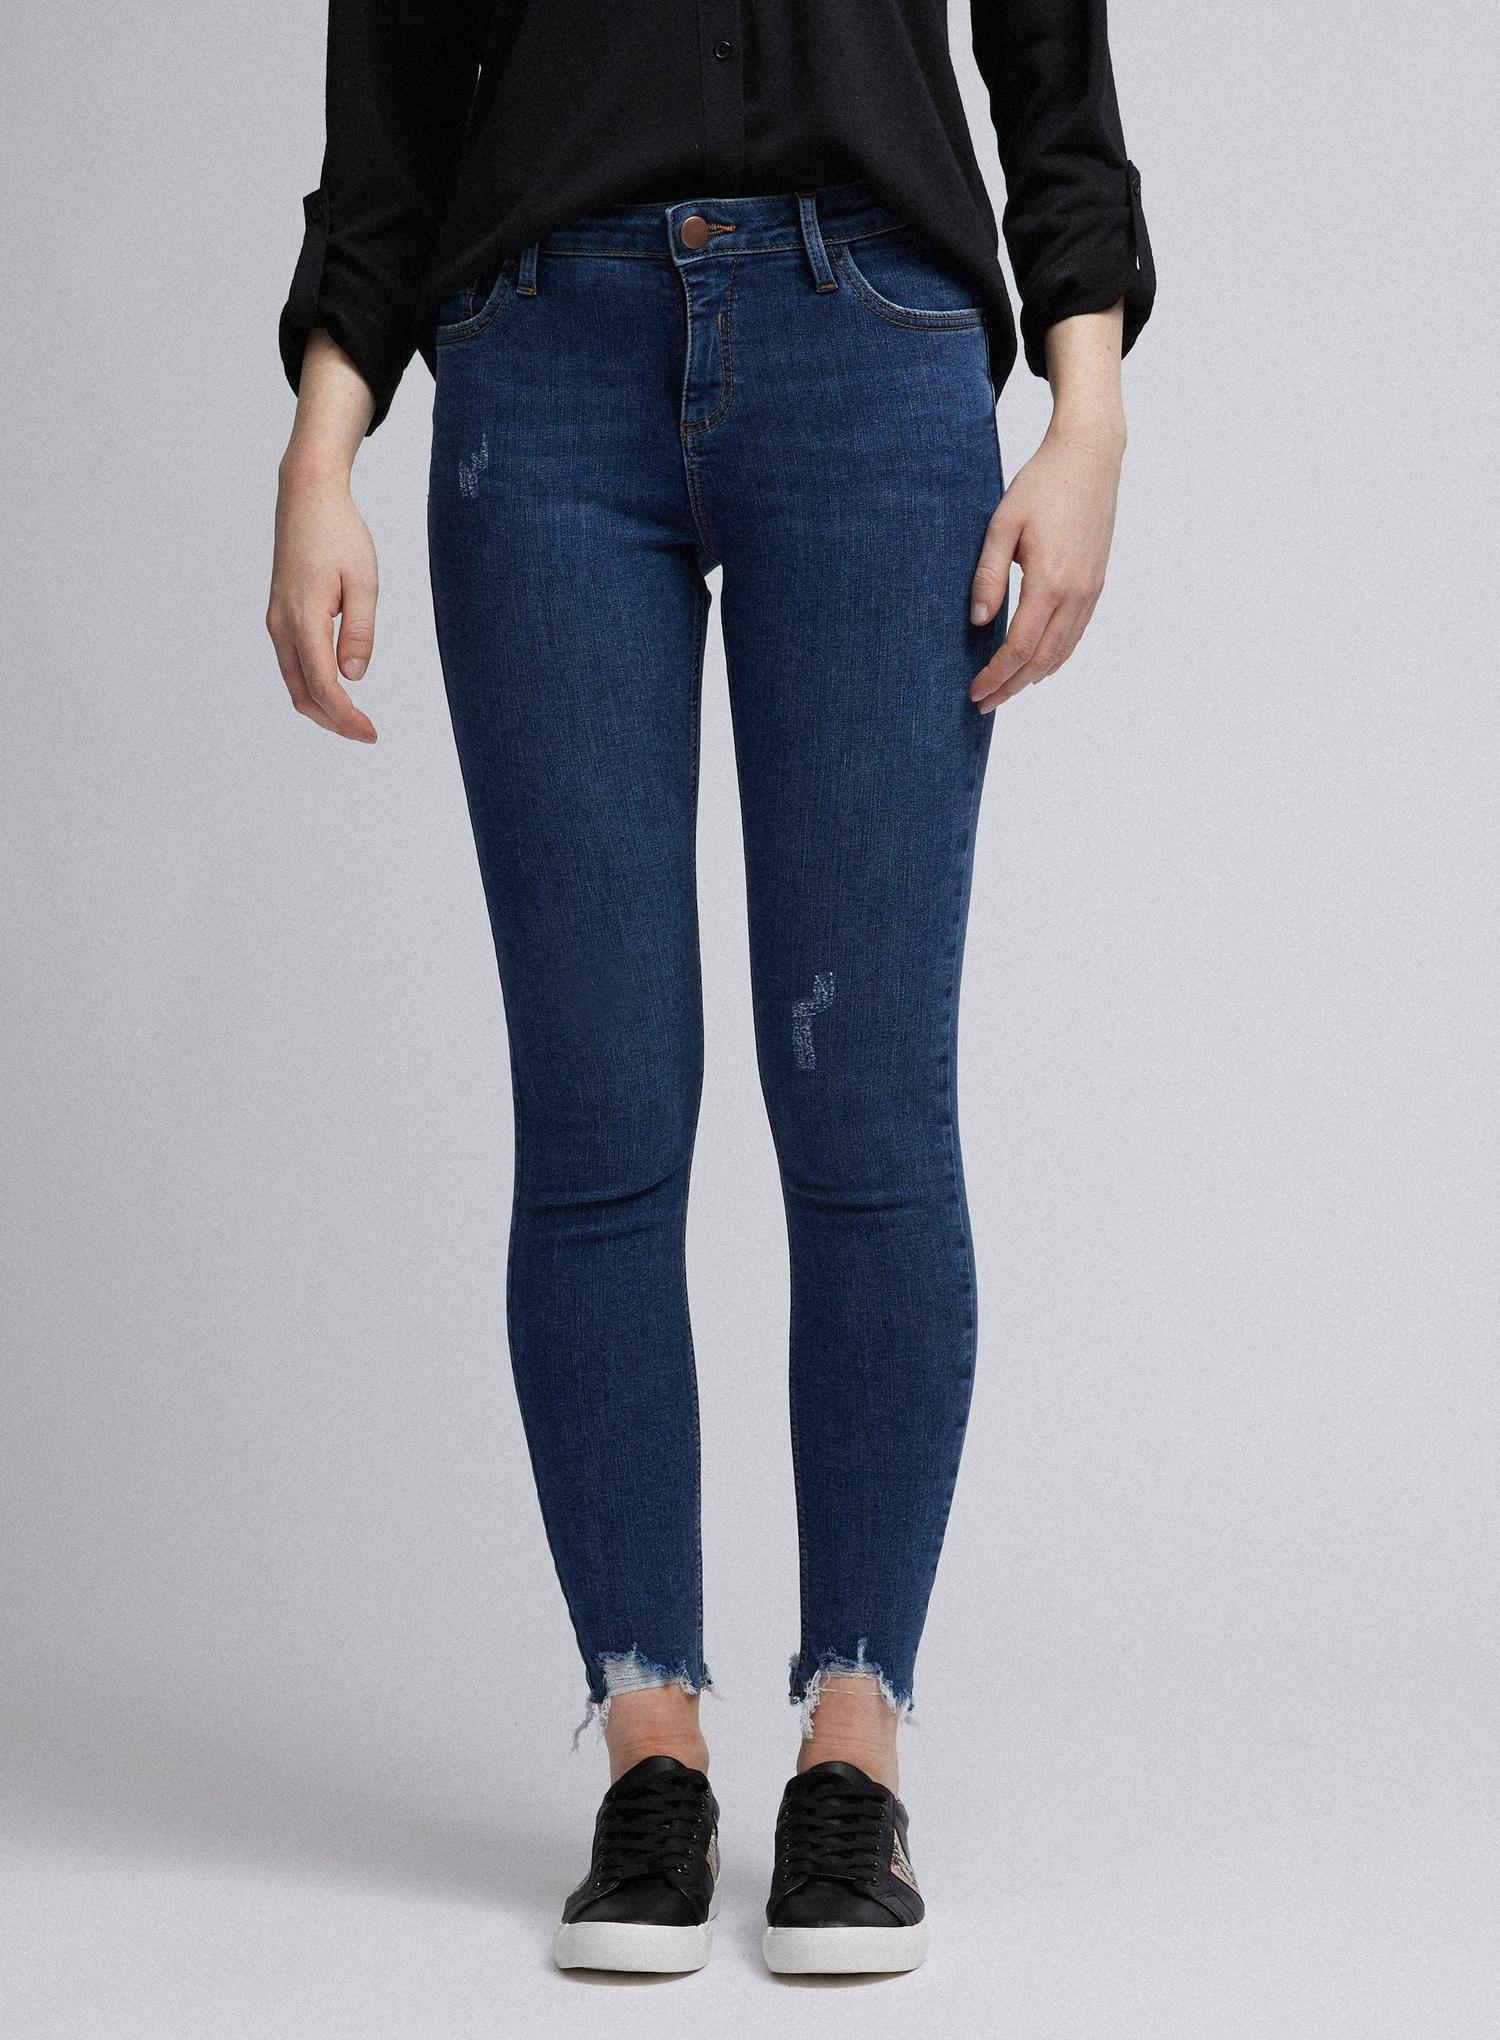 132 Organic Indigo Regular Nibble Darcy Jeans image number 3